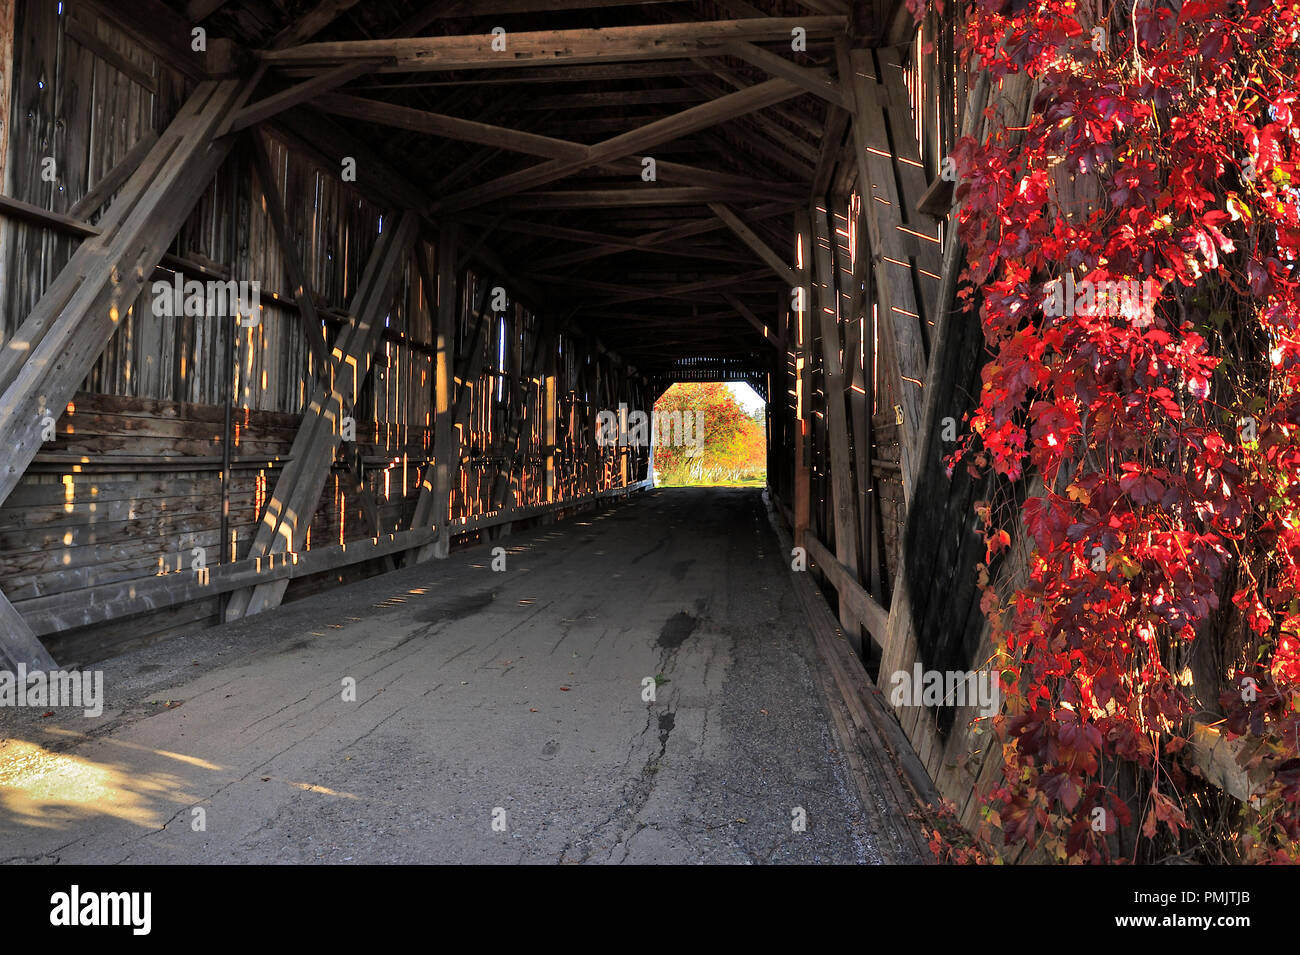 A horizontal landscape image of the inside of a covered bridge showing the heavy wood beams that make up the structure and the opening on the other si - Stock Image